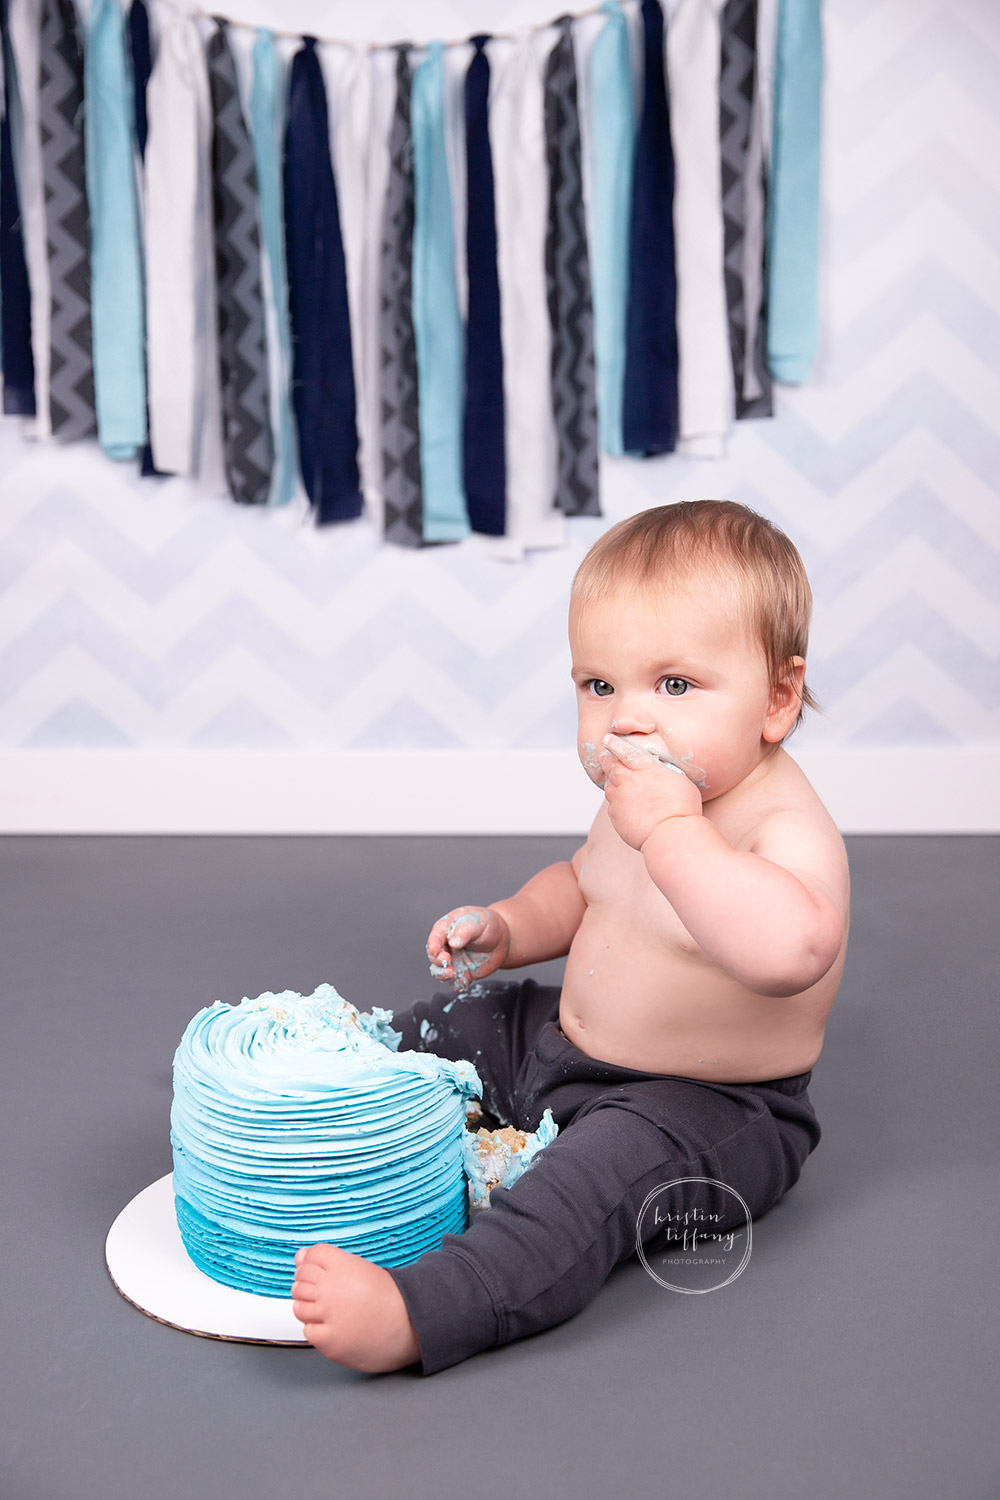 a photo of a baby boy at his cake smash photo session